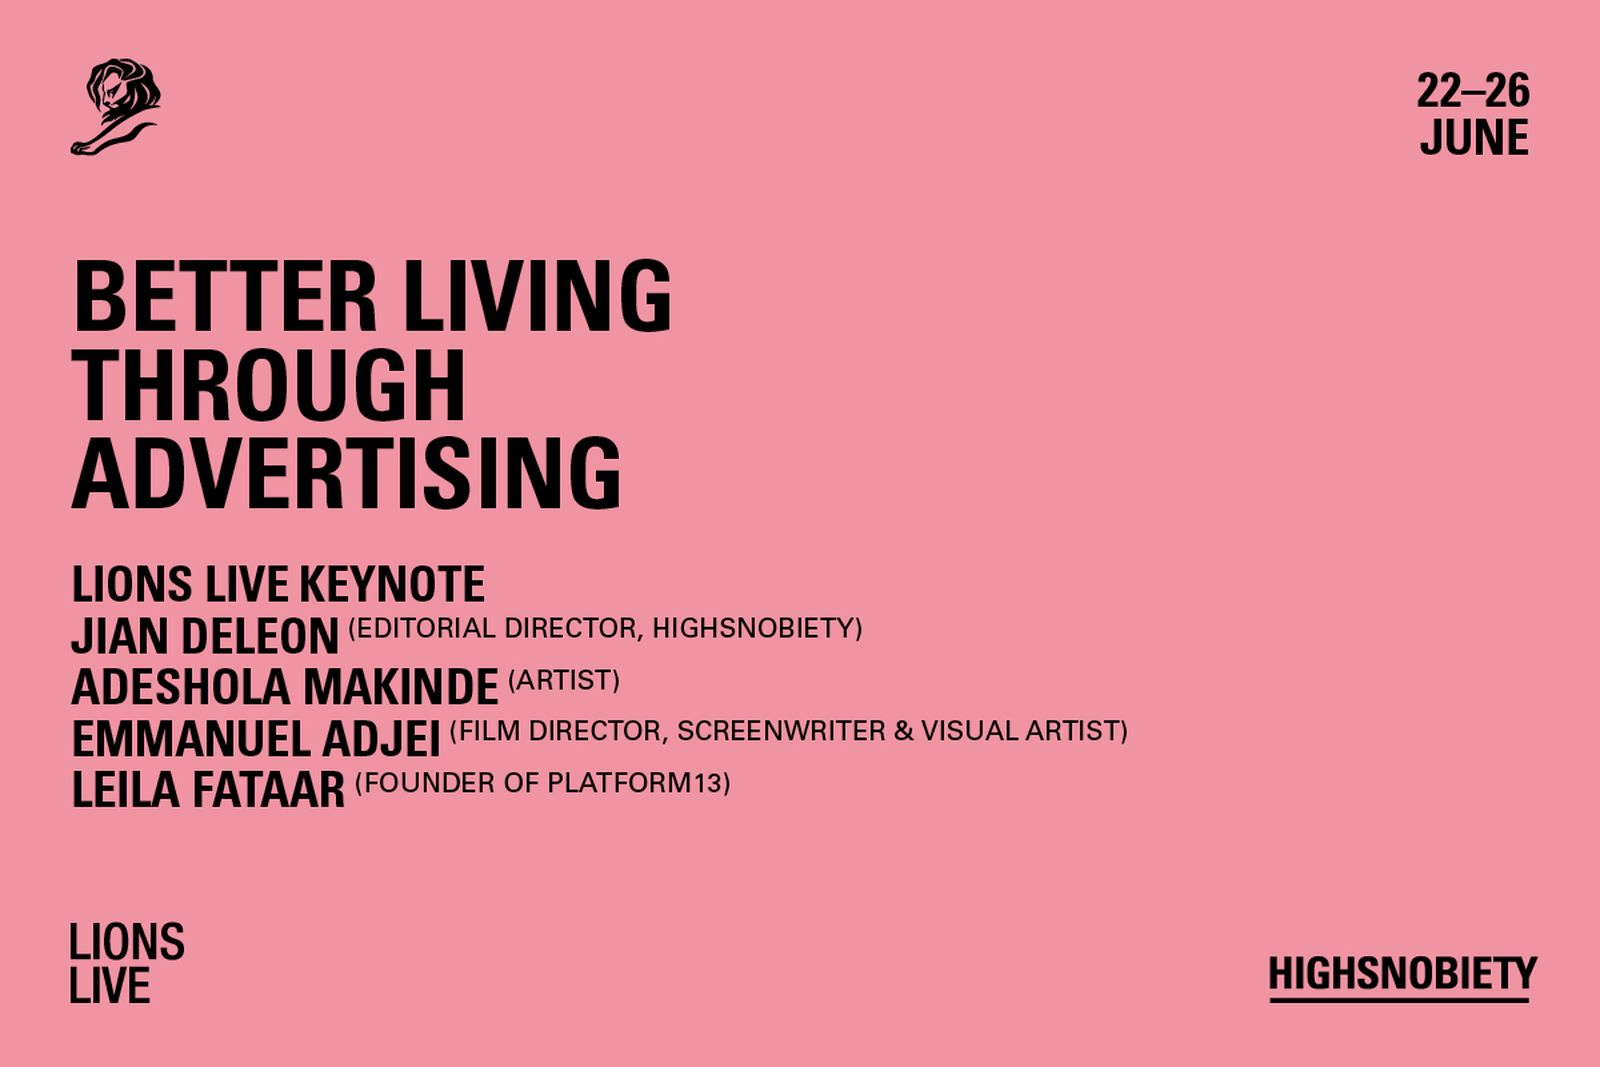 cannes-lions-better-living-through-advertising